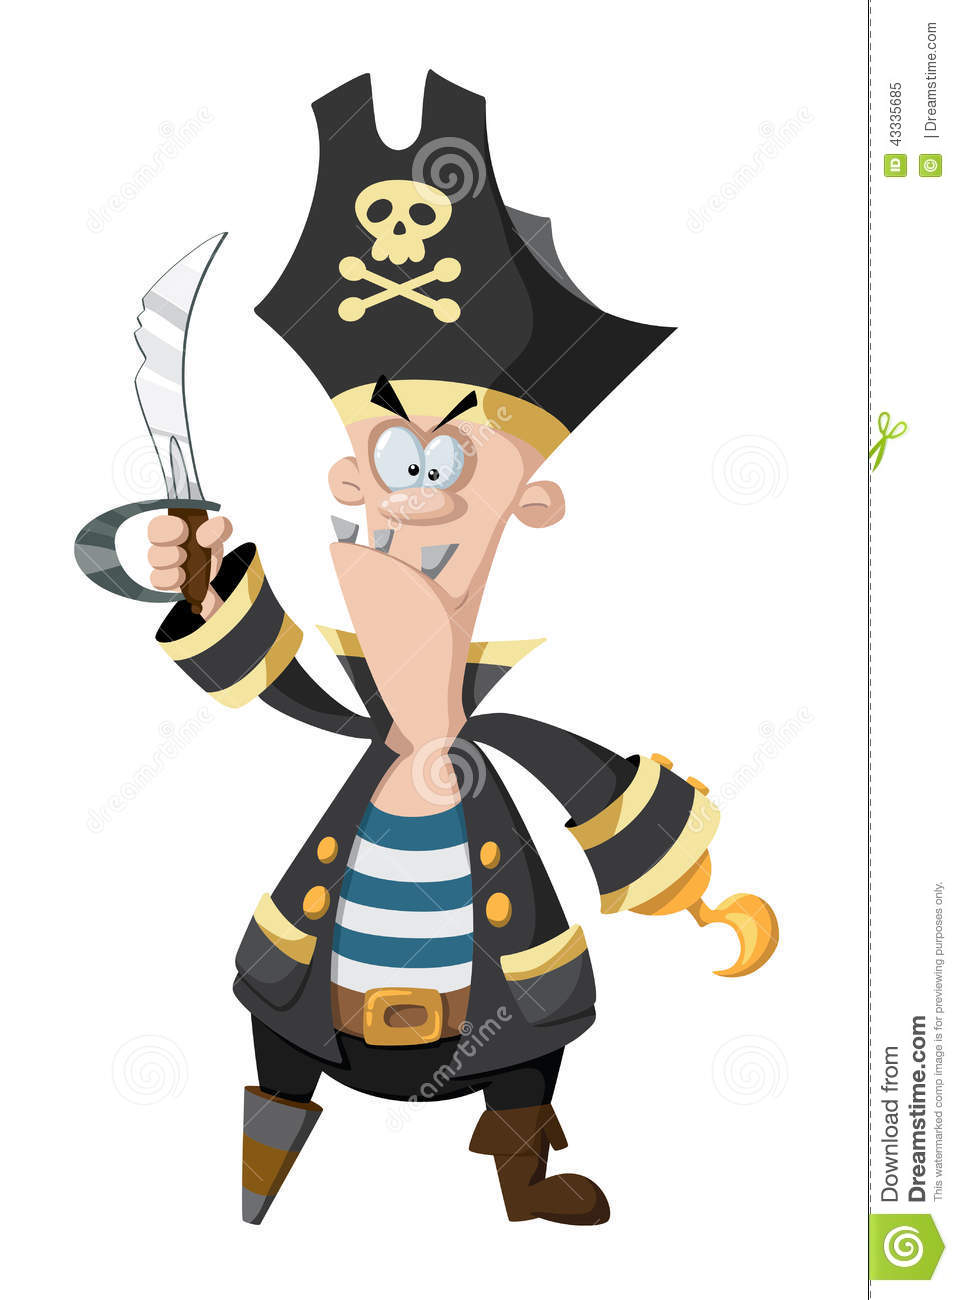 What Is Angry Pirate